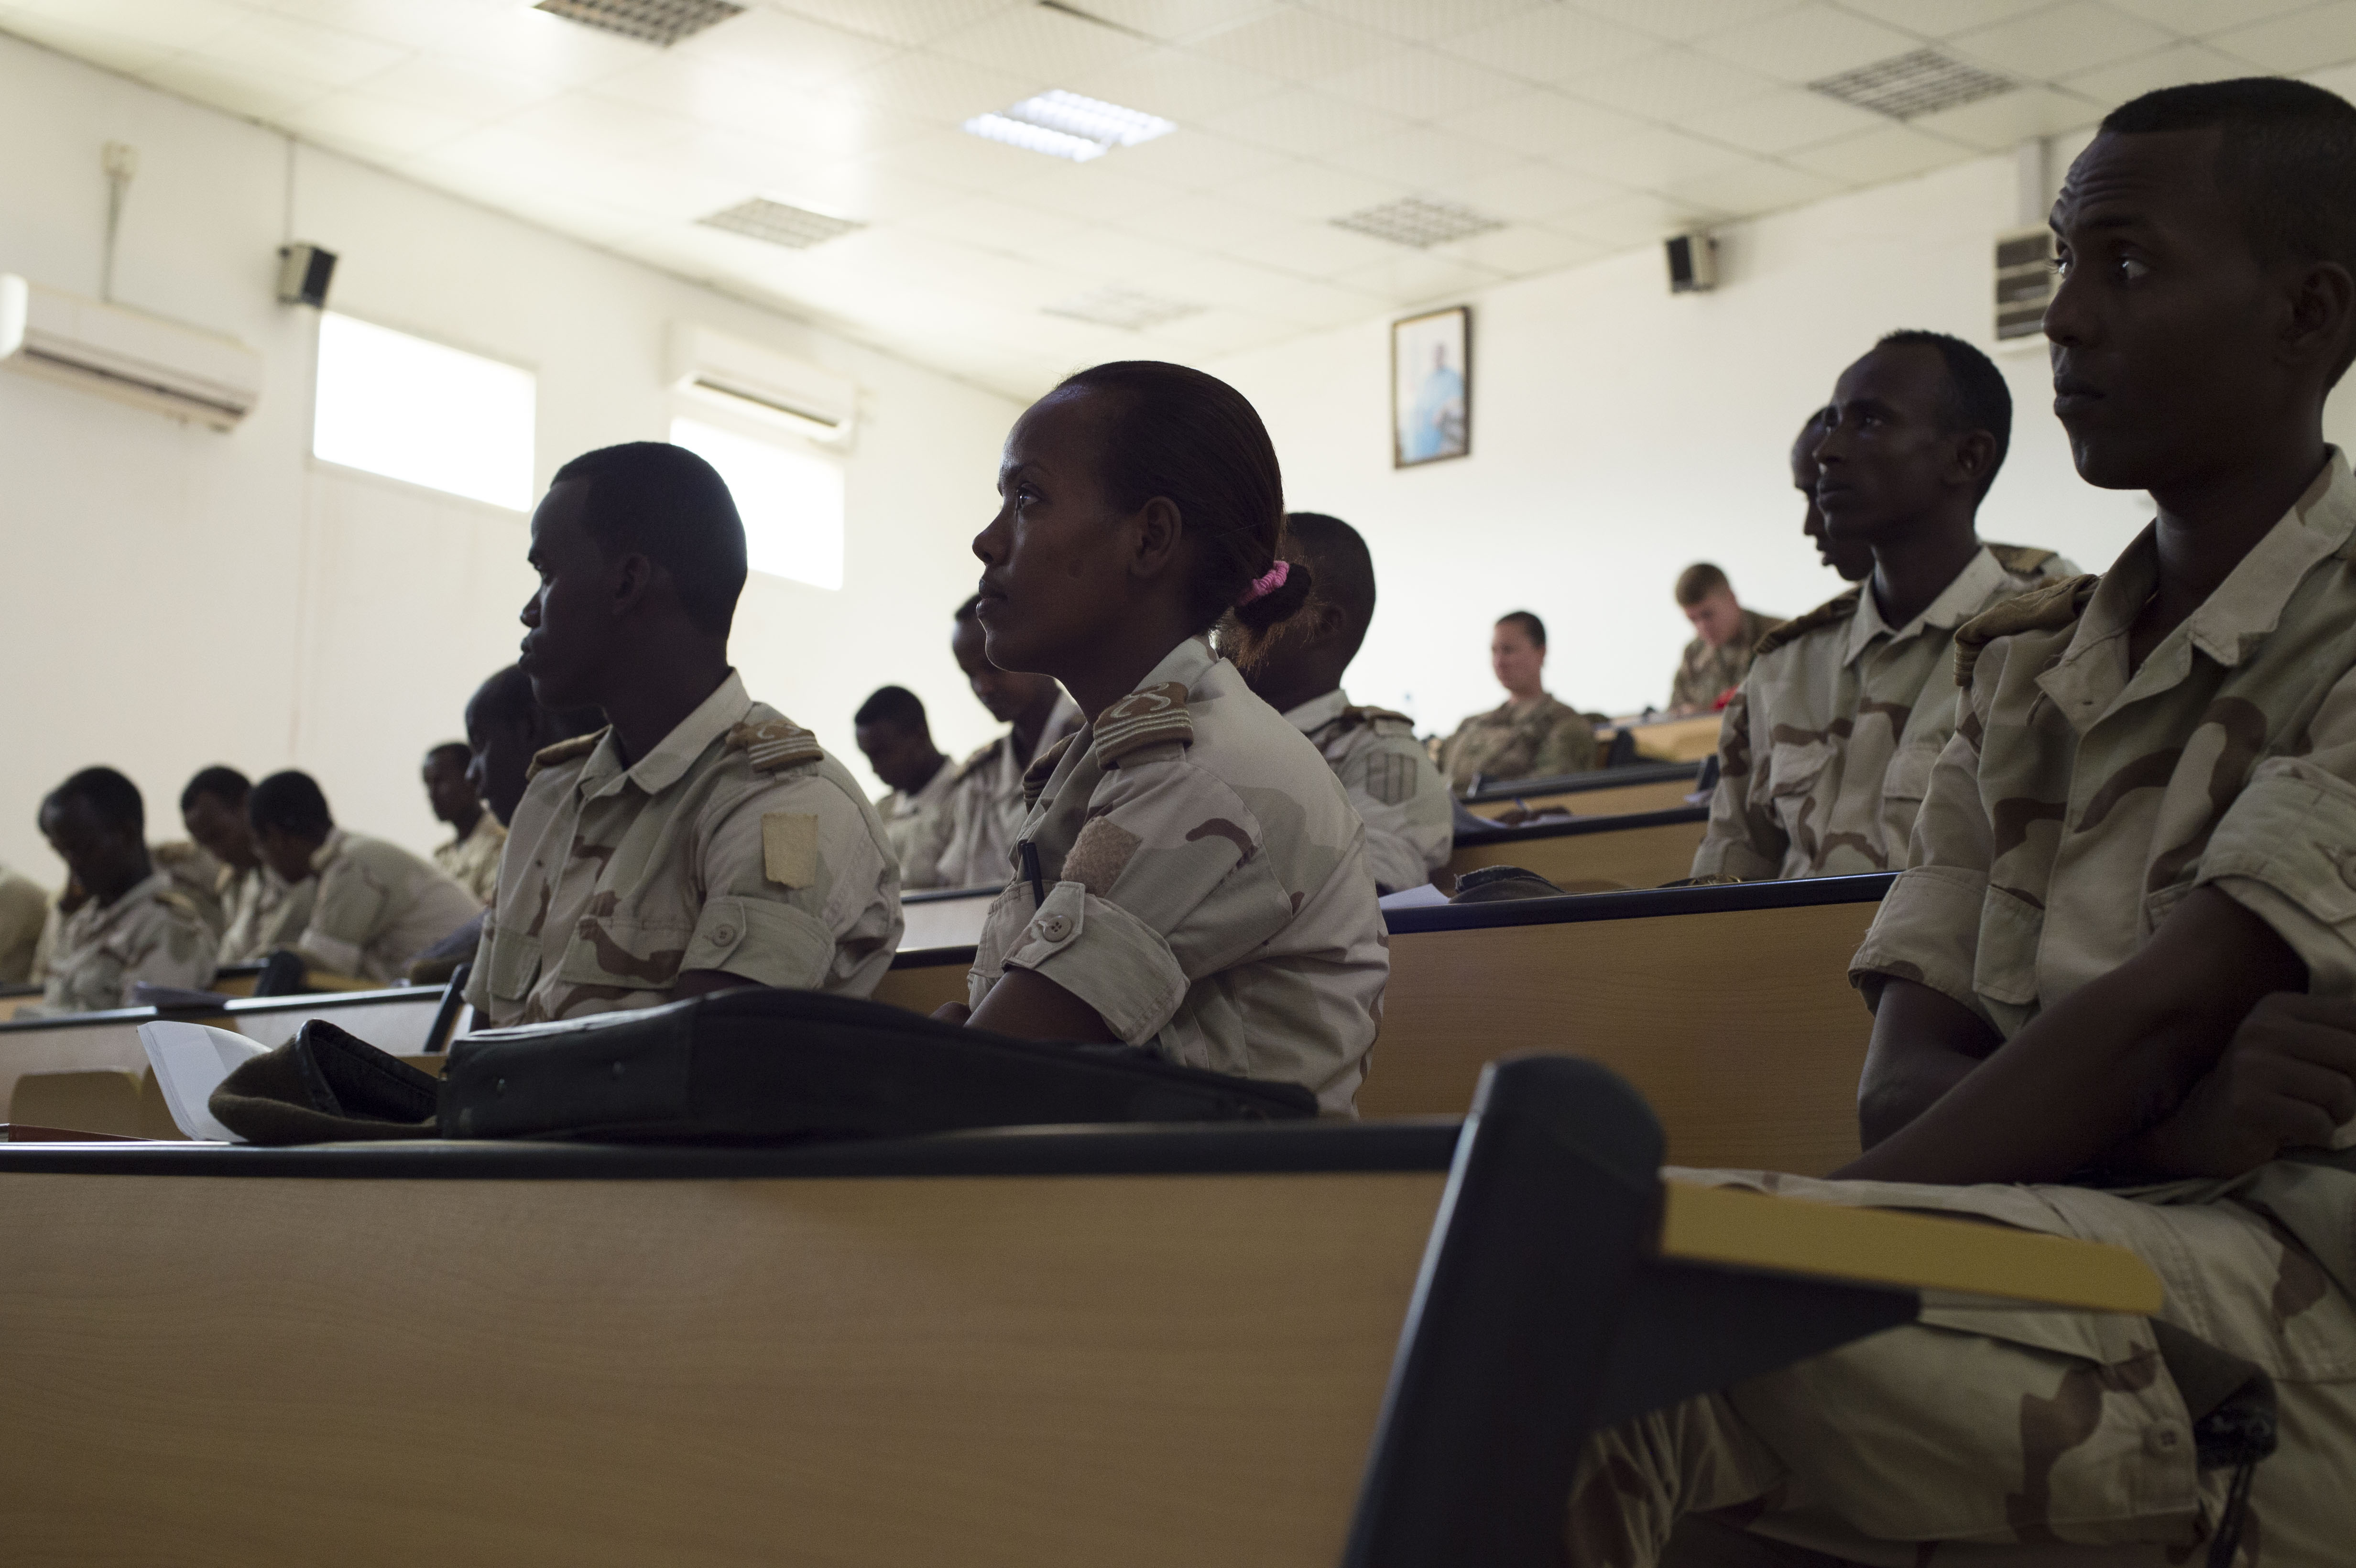 Djibouti's Arta Interservices Military Academy cadets listen as members from the U.S. Army 403rd Civil Affairs Battalion teach about the importance of developing relations with host nation locals during Civil Military Cooperation training May 17, 2016, at Arta, Djibouti.  The two-week training taught the cadets communication skills to use when they deploy to Somalia. (U.S. Air Force photo by Staff Sgt. Eric Summers Jr.)